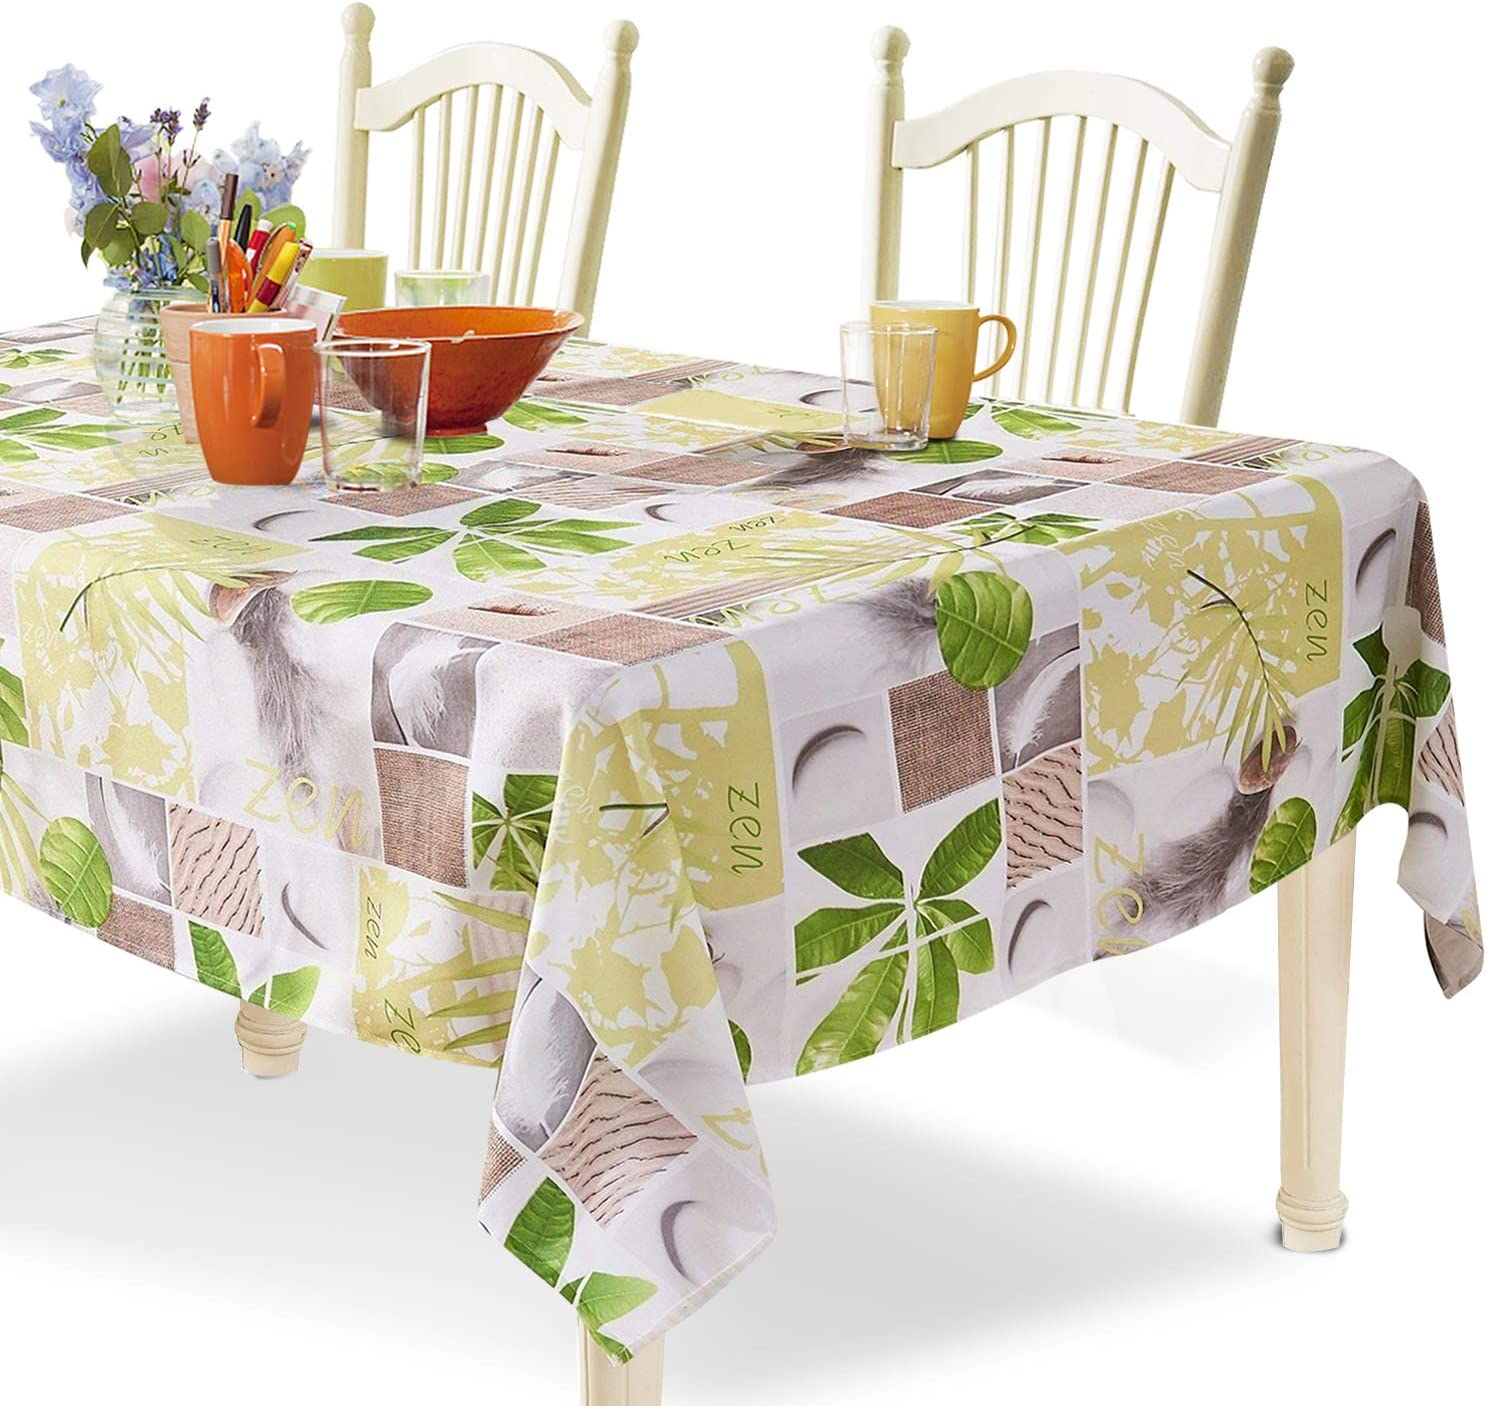 YEMYHOM 100% Polyester Spillproof Tablecloths for Rectangle Tables 60 x 84 Inch, Modern Printed Indoor Outdoor Camping Picnic Rectangular Table Cloth (Green Plants)